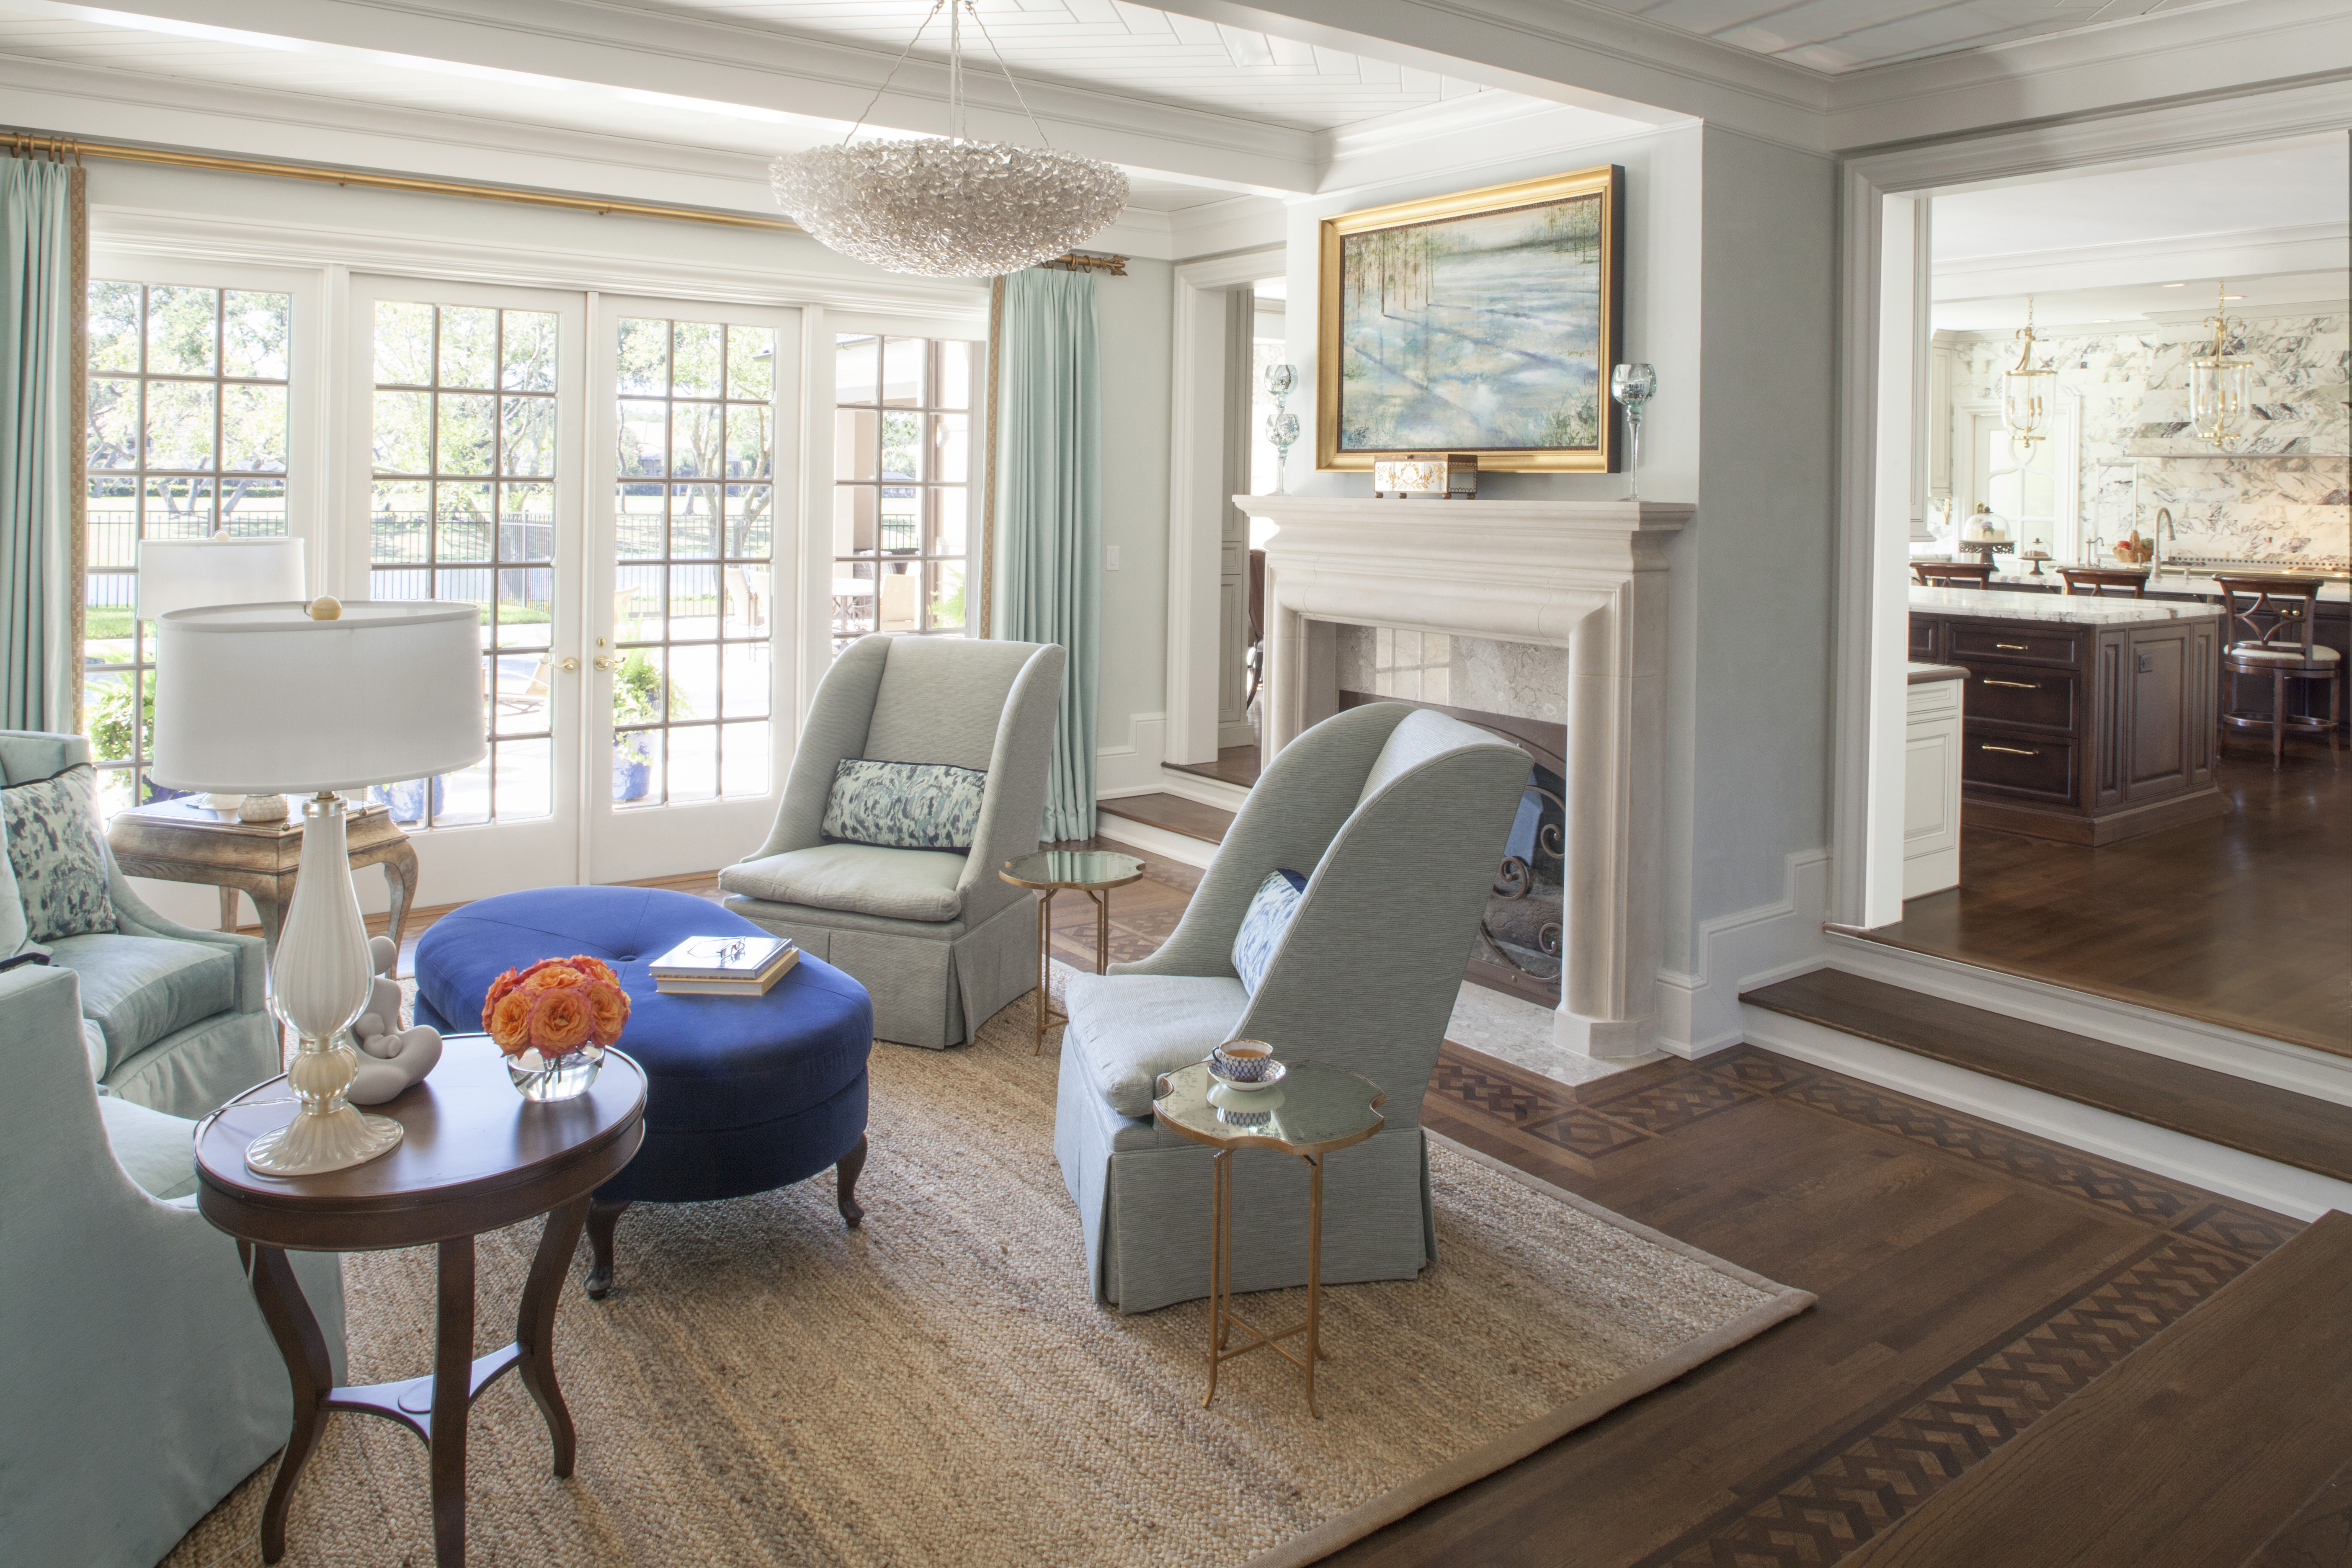 French Country Renovation: Amanda​ ​Webster,​ ​Andrea​ ​Colbert,​ ​&​ ​Becky​ ​Demetriou​ ​-​ ​Amanda Webster​ ​Design